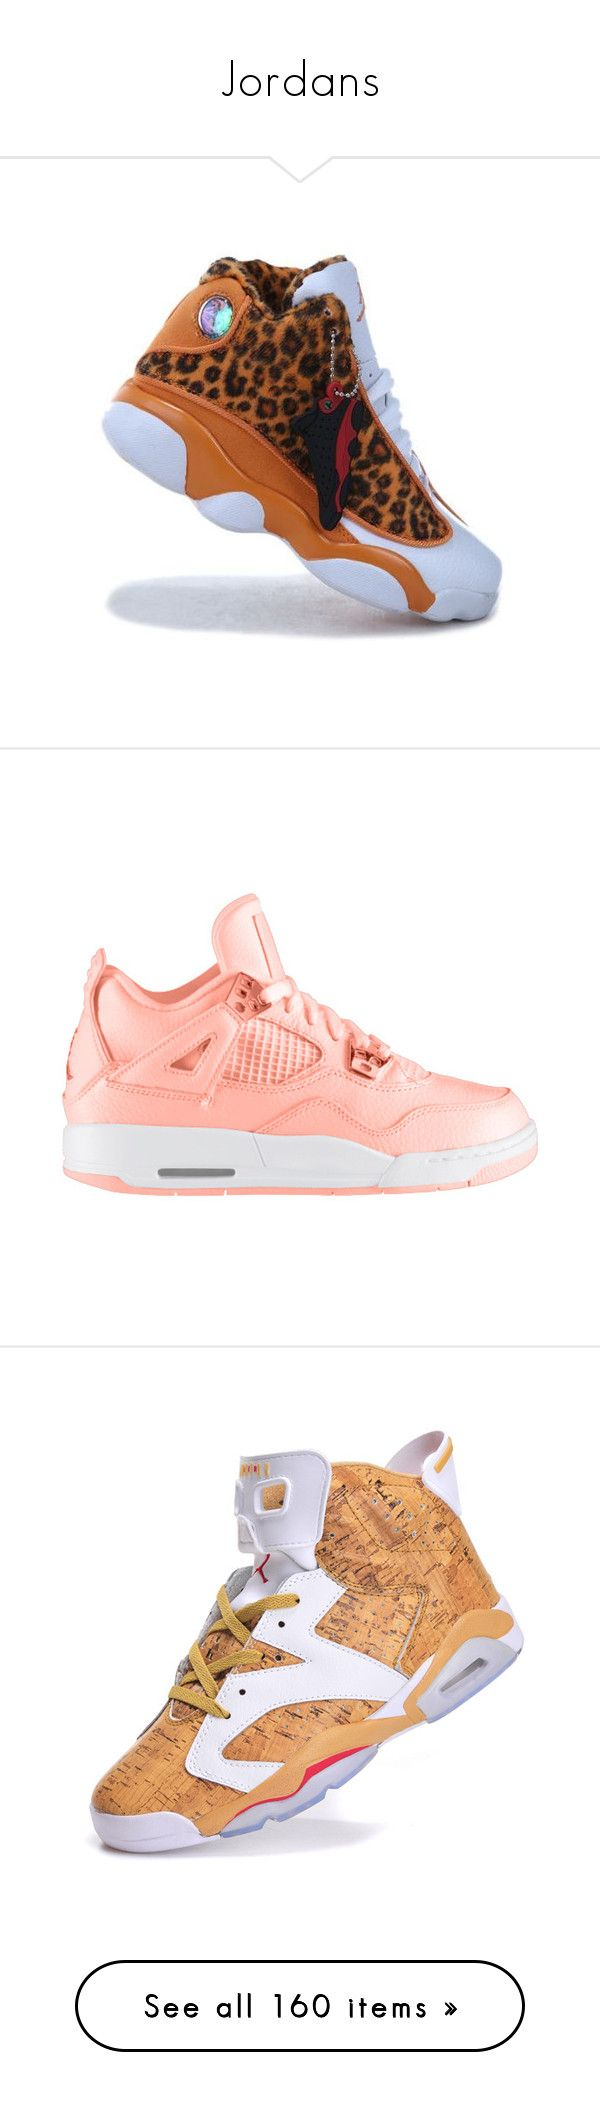 """""""Jordans"""" by prncssmacc ❤ liked on Polyvore featuring shoes, sneakers, jordans, rubber footwear, rubber shoes, nike, spiked shoes, nike shoes, nike footwear and retro style shoes"""